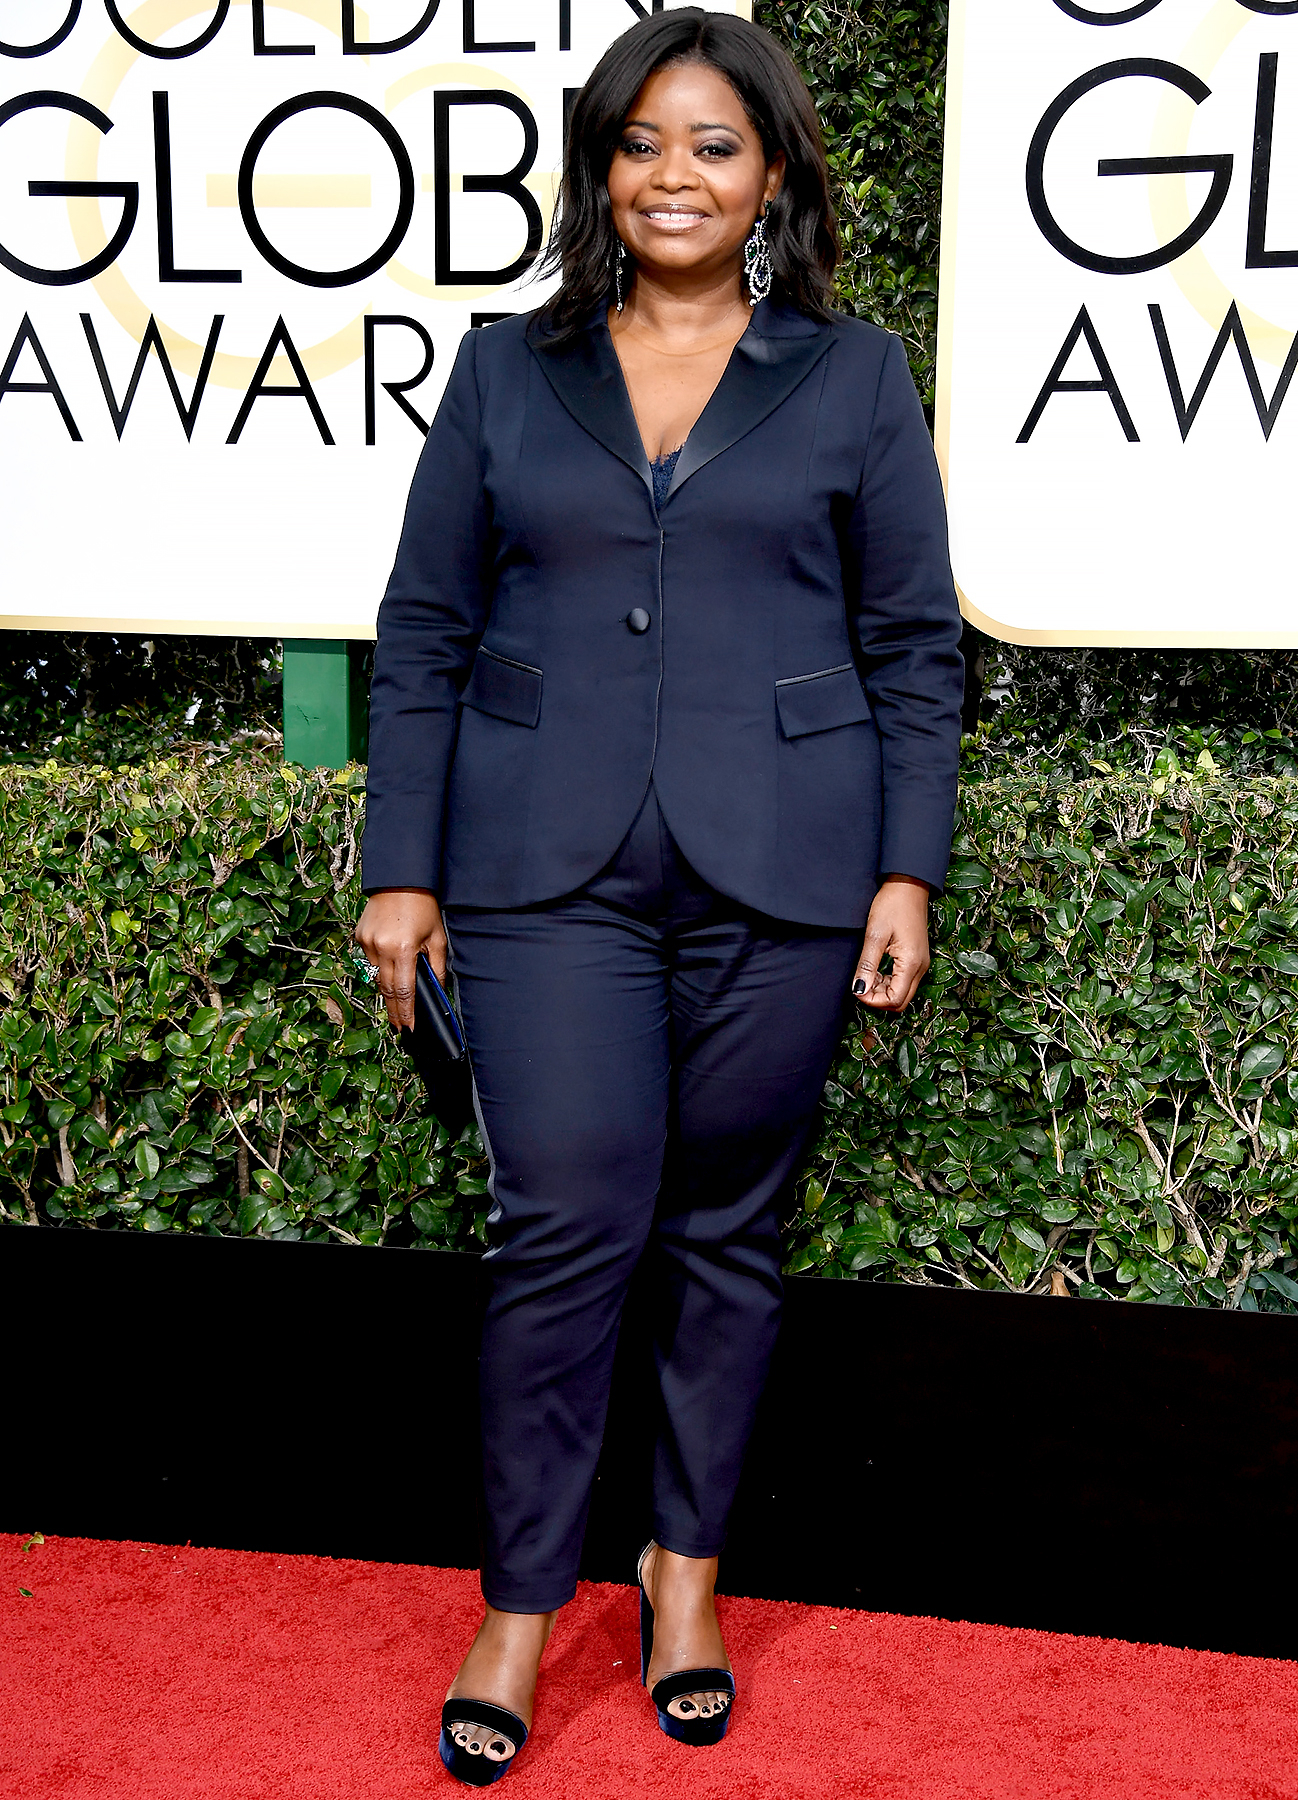 Octavia Spencer attends the 74th Annual Golden Globe Awards at The Beverly Hilton Hotel on January 8, 2017 in Beverly Hills, California.